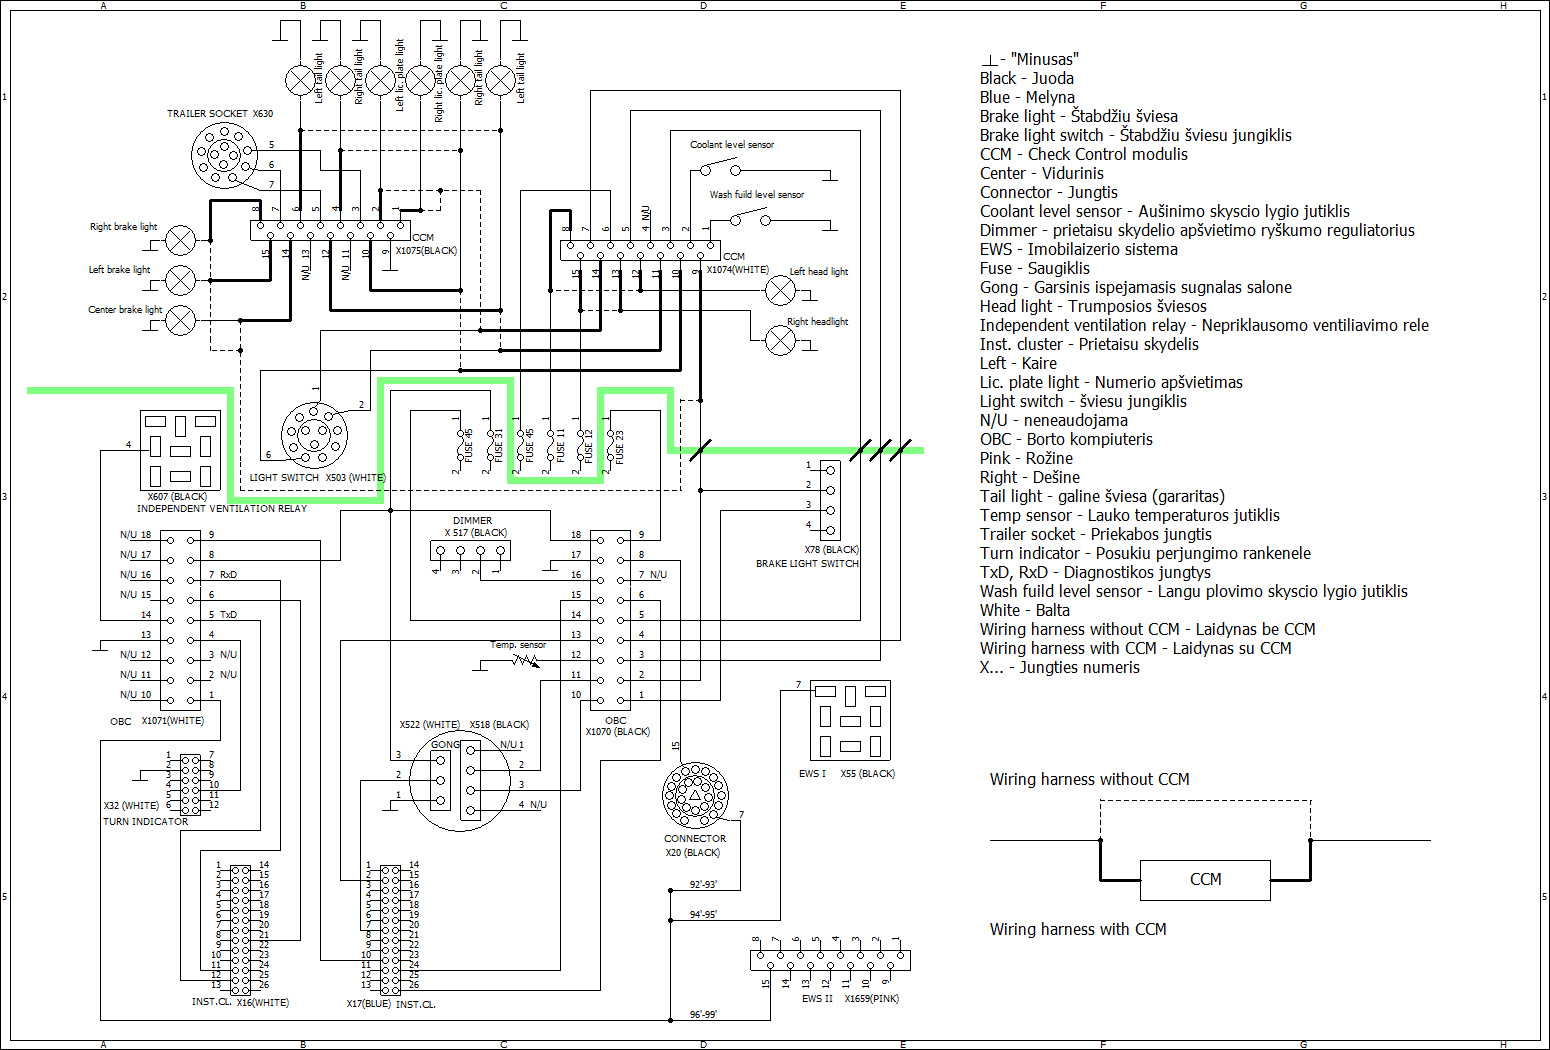 CCM+OBC?resize=665%2C450 bmw e36 climate control wiring diagram wiring diagram e36 climate control wiring diagram at gsmx.co